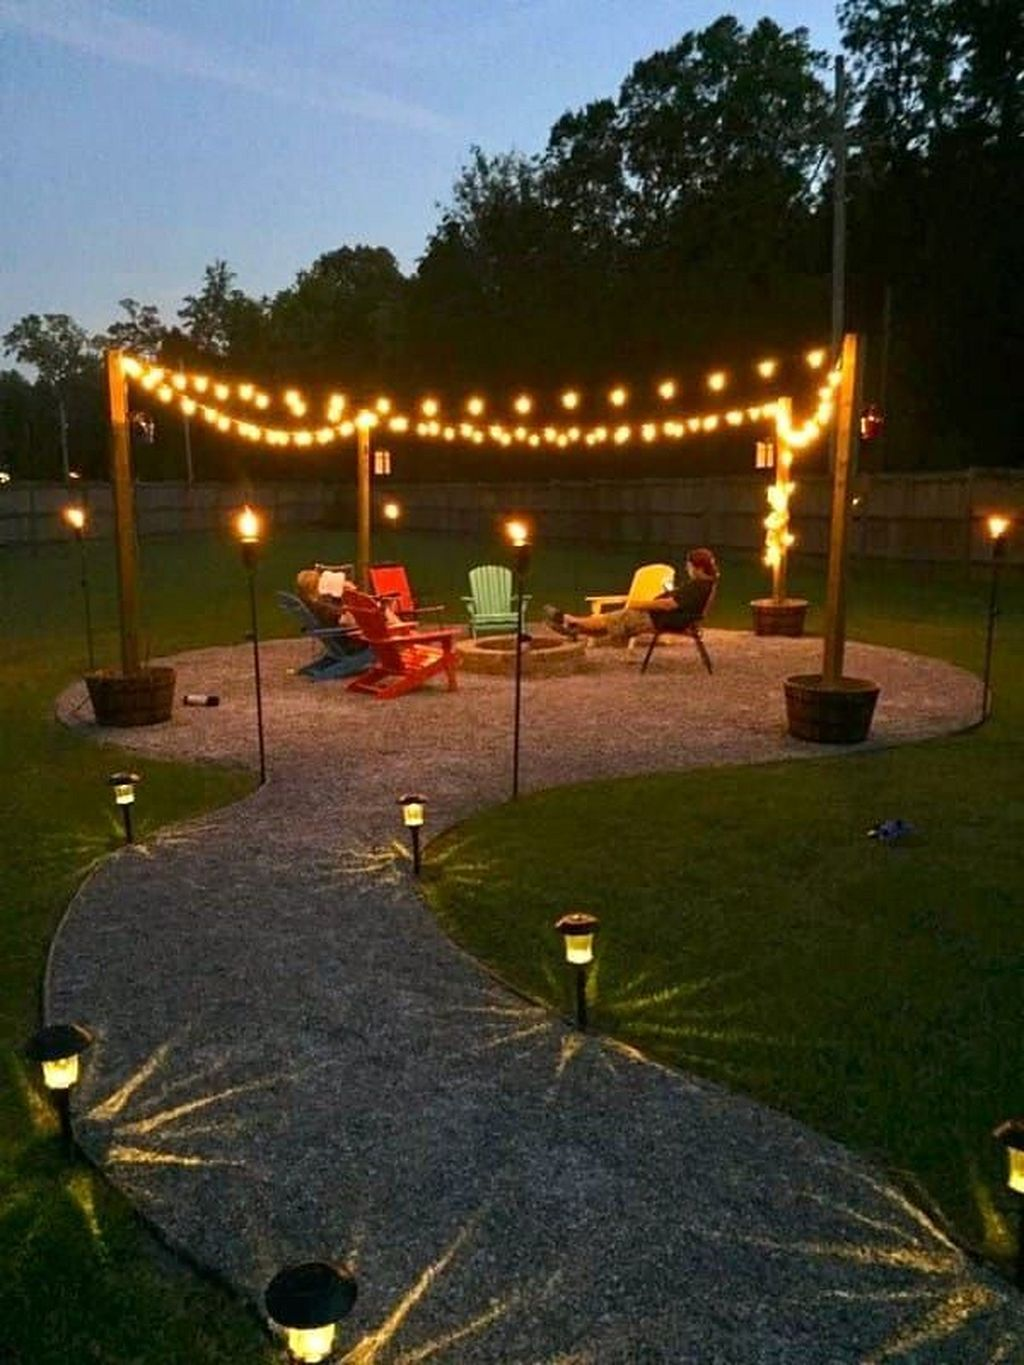 20 diy backyard lighting projects ideas pinterest project ideas stunning 20 diy backyard lighting projects ideas httpsarchitecturemagz20 diy backyard lighting projects ideas solutioingenieria Image collections